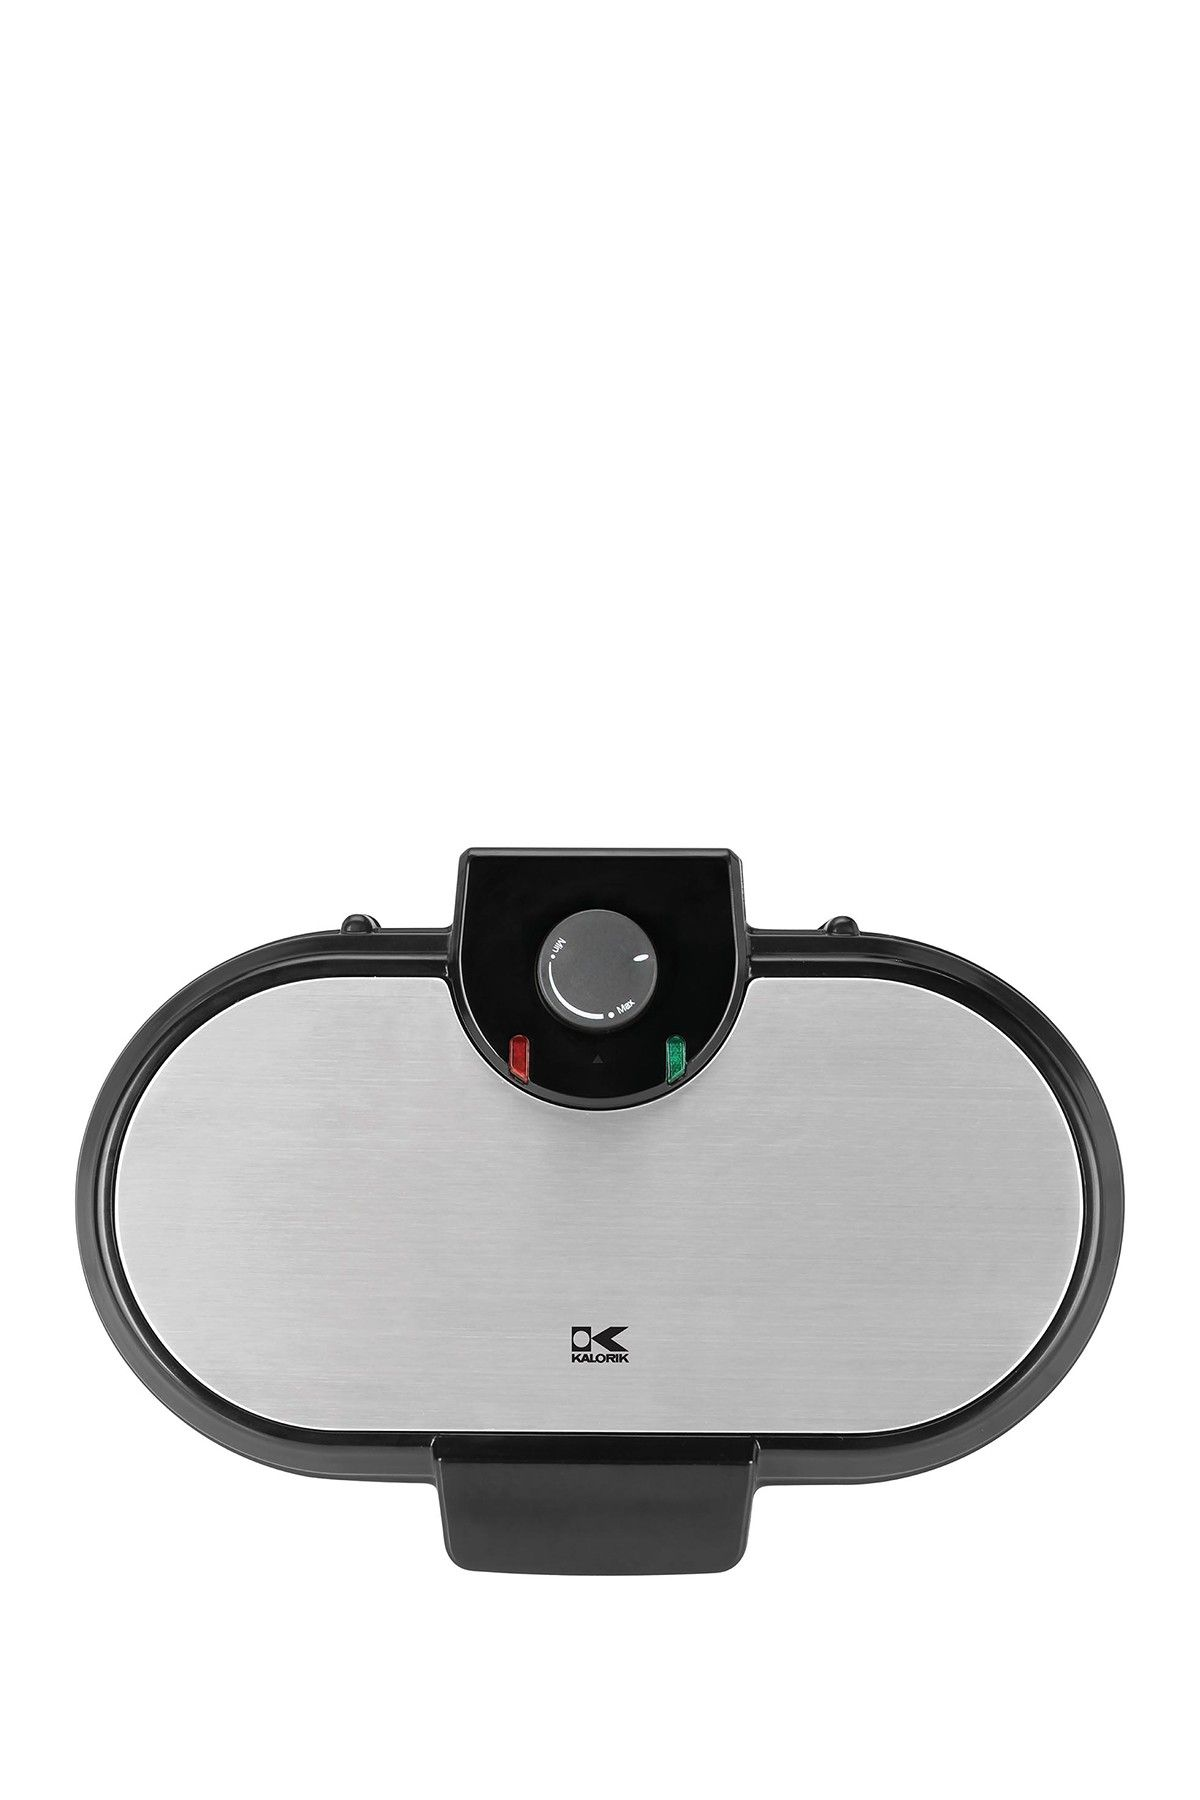 Kalorik Black And Stainless Steel Double Belgian Waffle Maker Belgian Waffle Maker Belgian Waffles Women Accessories